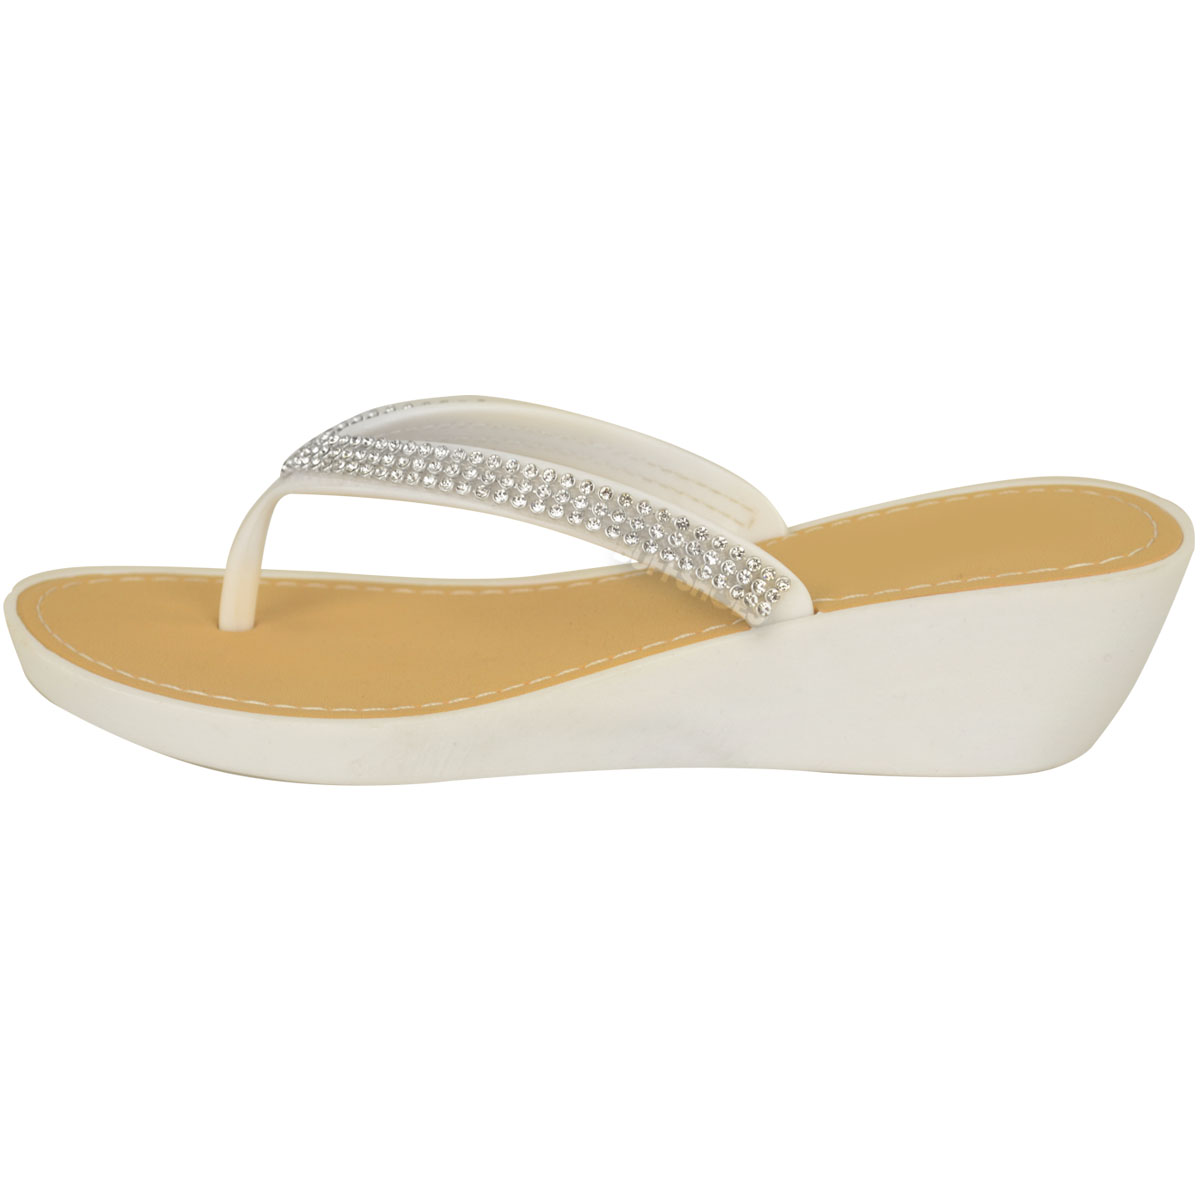 NEW-JELLY-SANDALS-WOMENS-LADIES-DIAMANTE-SUMMER-HOLIDAY-COMFORTS-FLIP-FLOPS-SIZE thumbnail 11